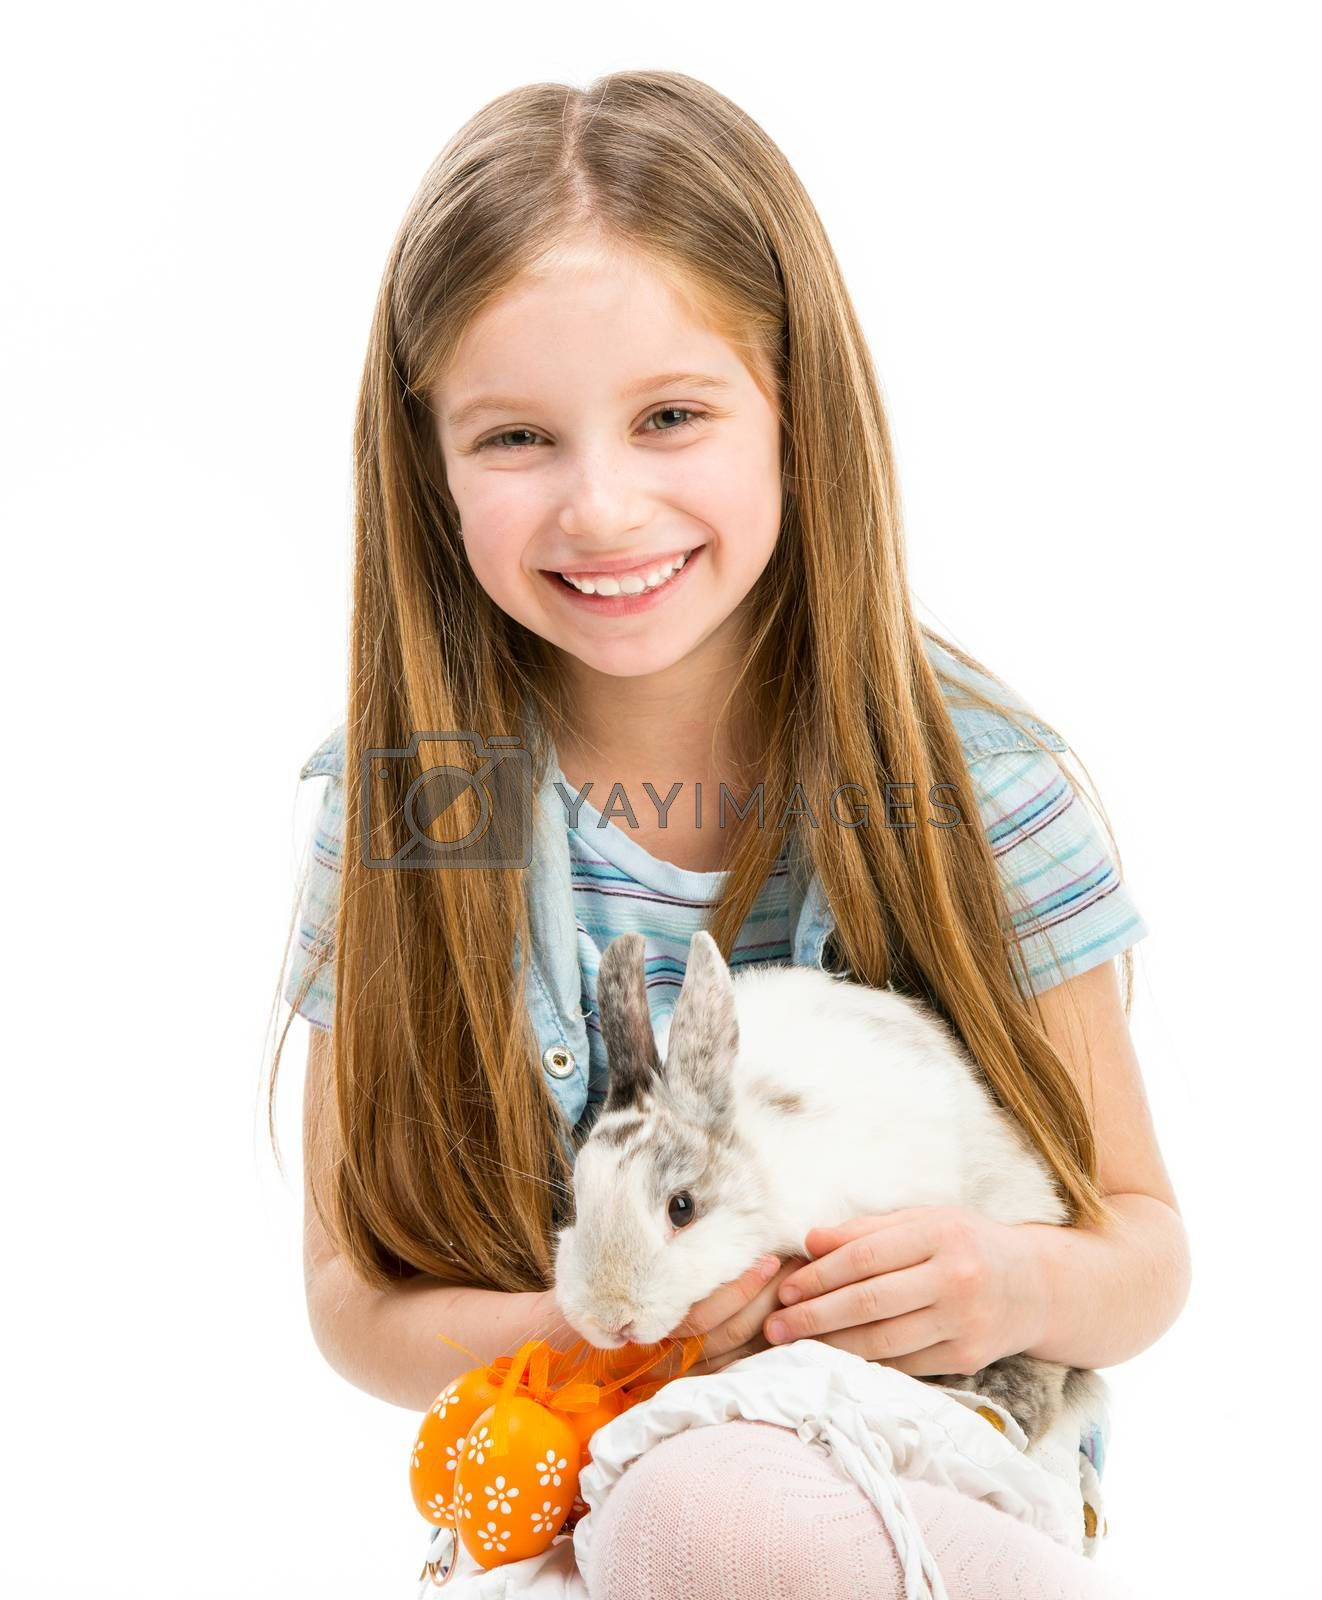 Royalty free image of little girl with rabbit by GekaSkr